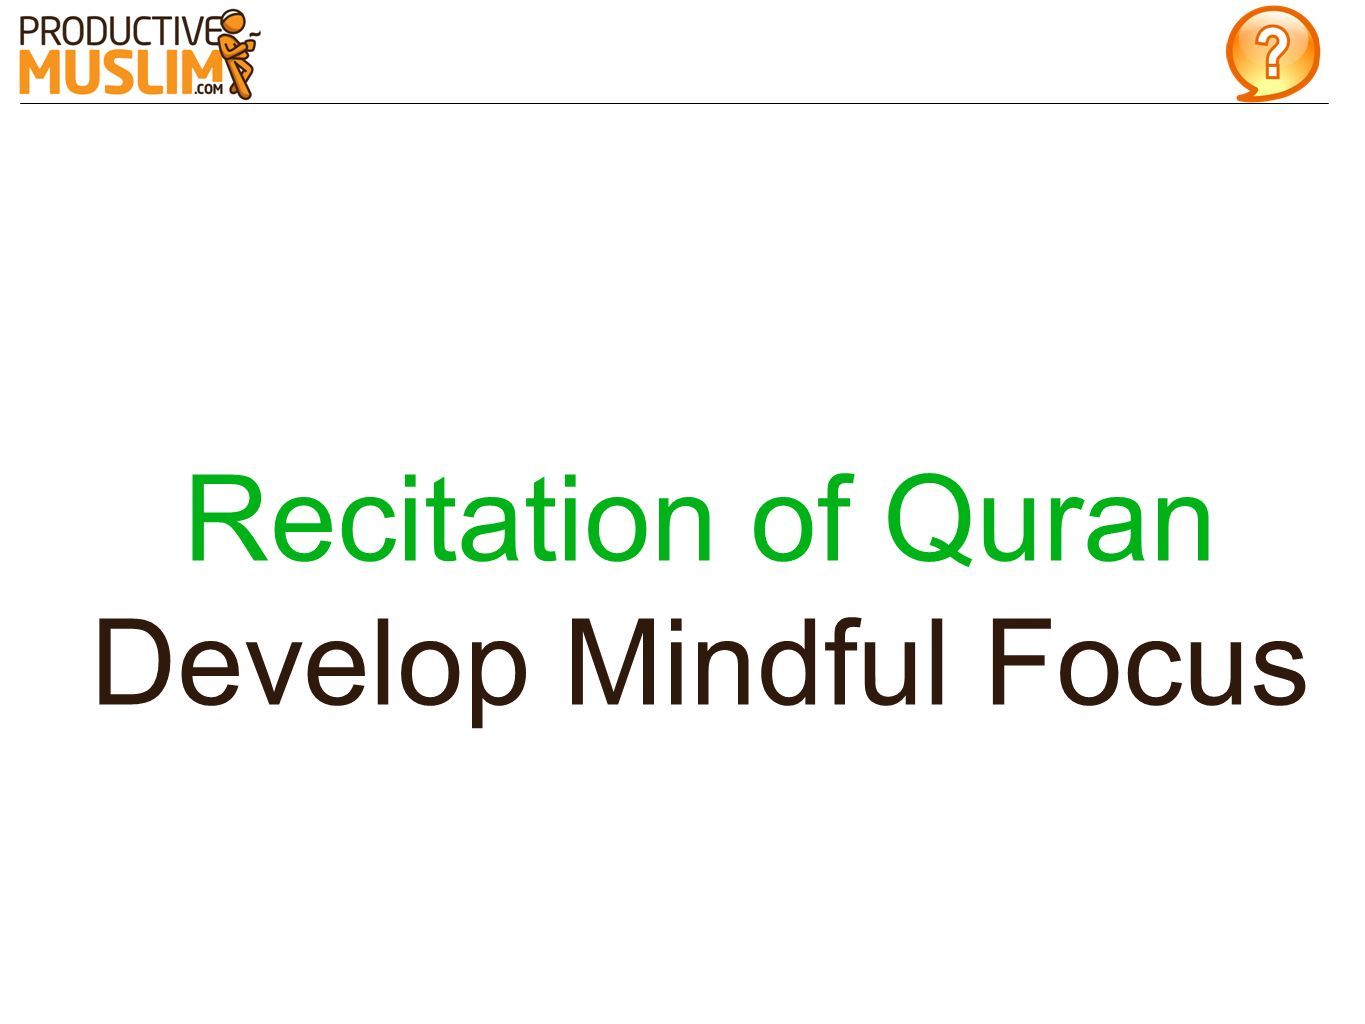 Recitation of Quran Develop Mindful Focus